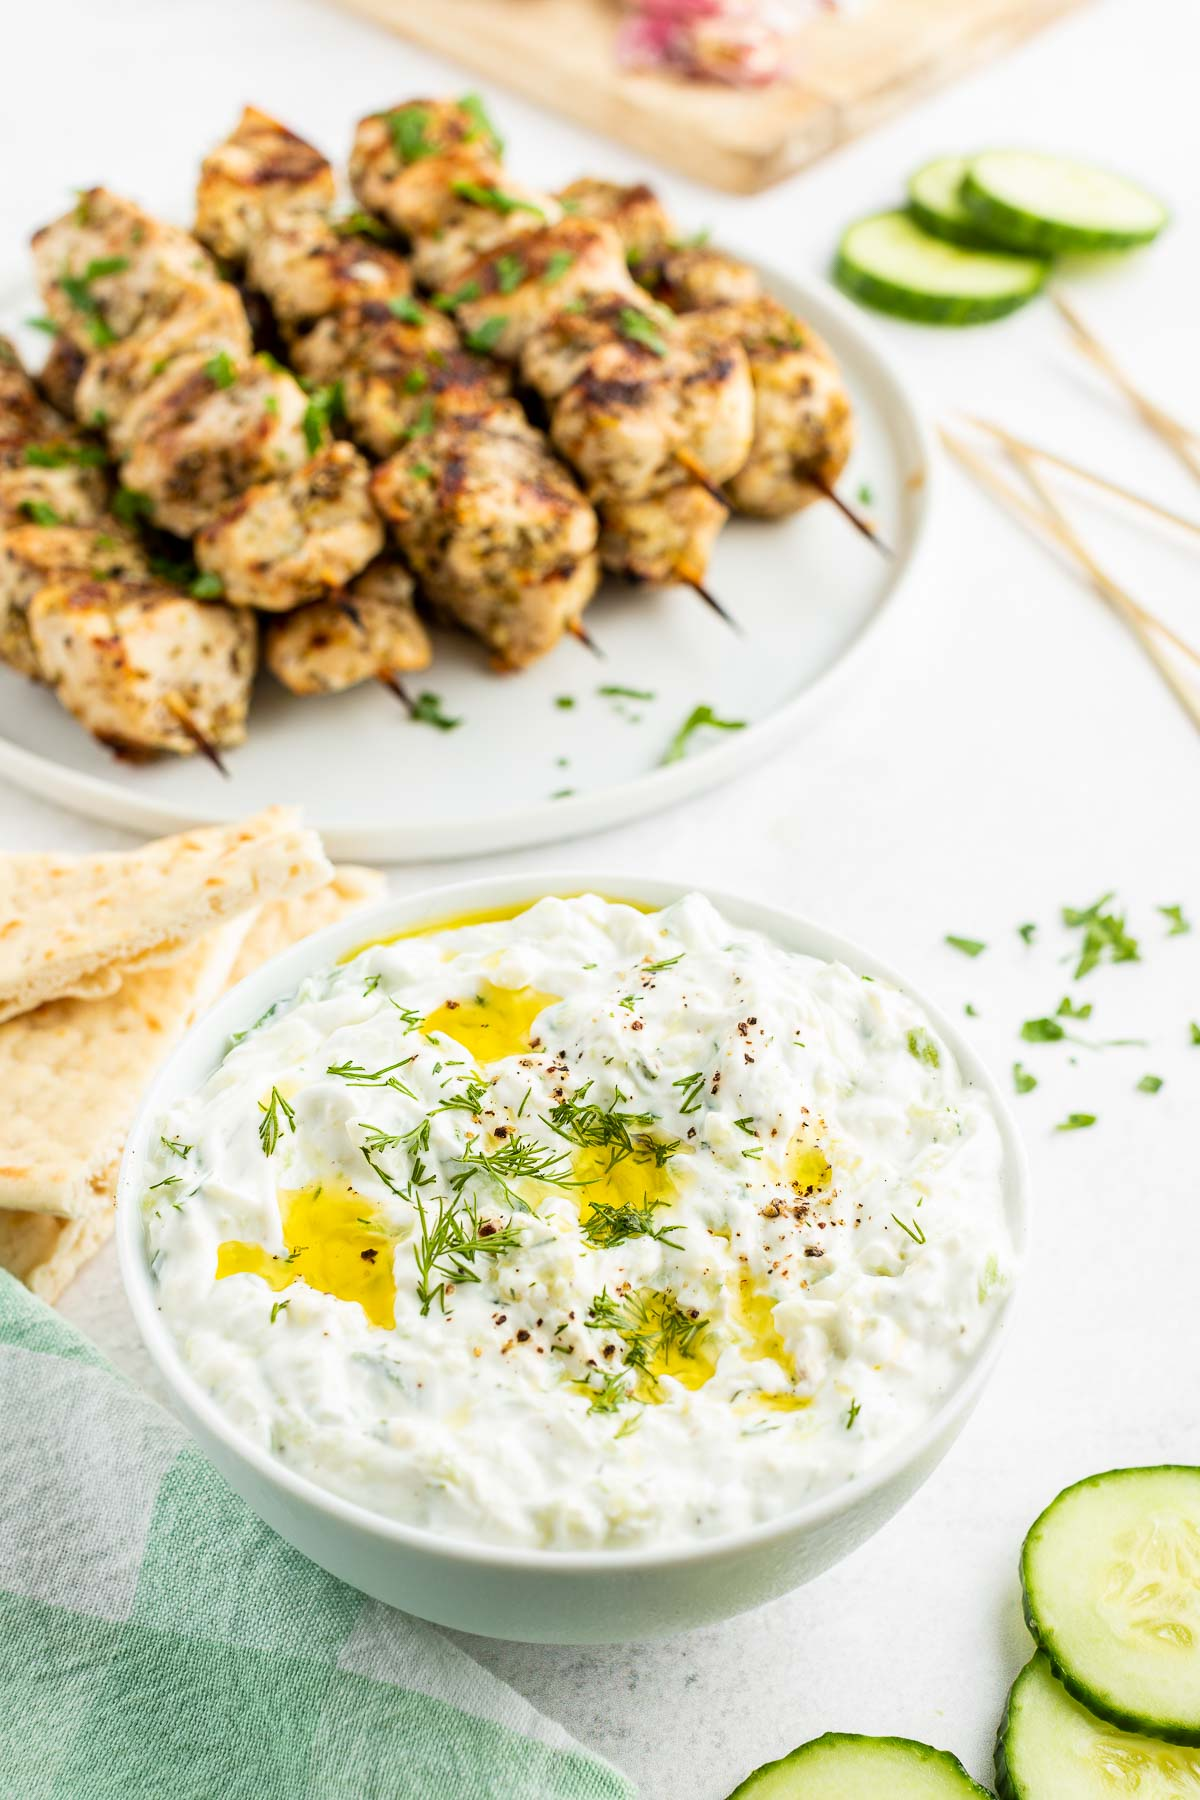 tzatziki sauce with chicken souvlaki skewers in the background